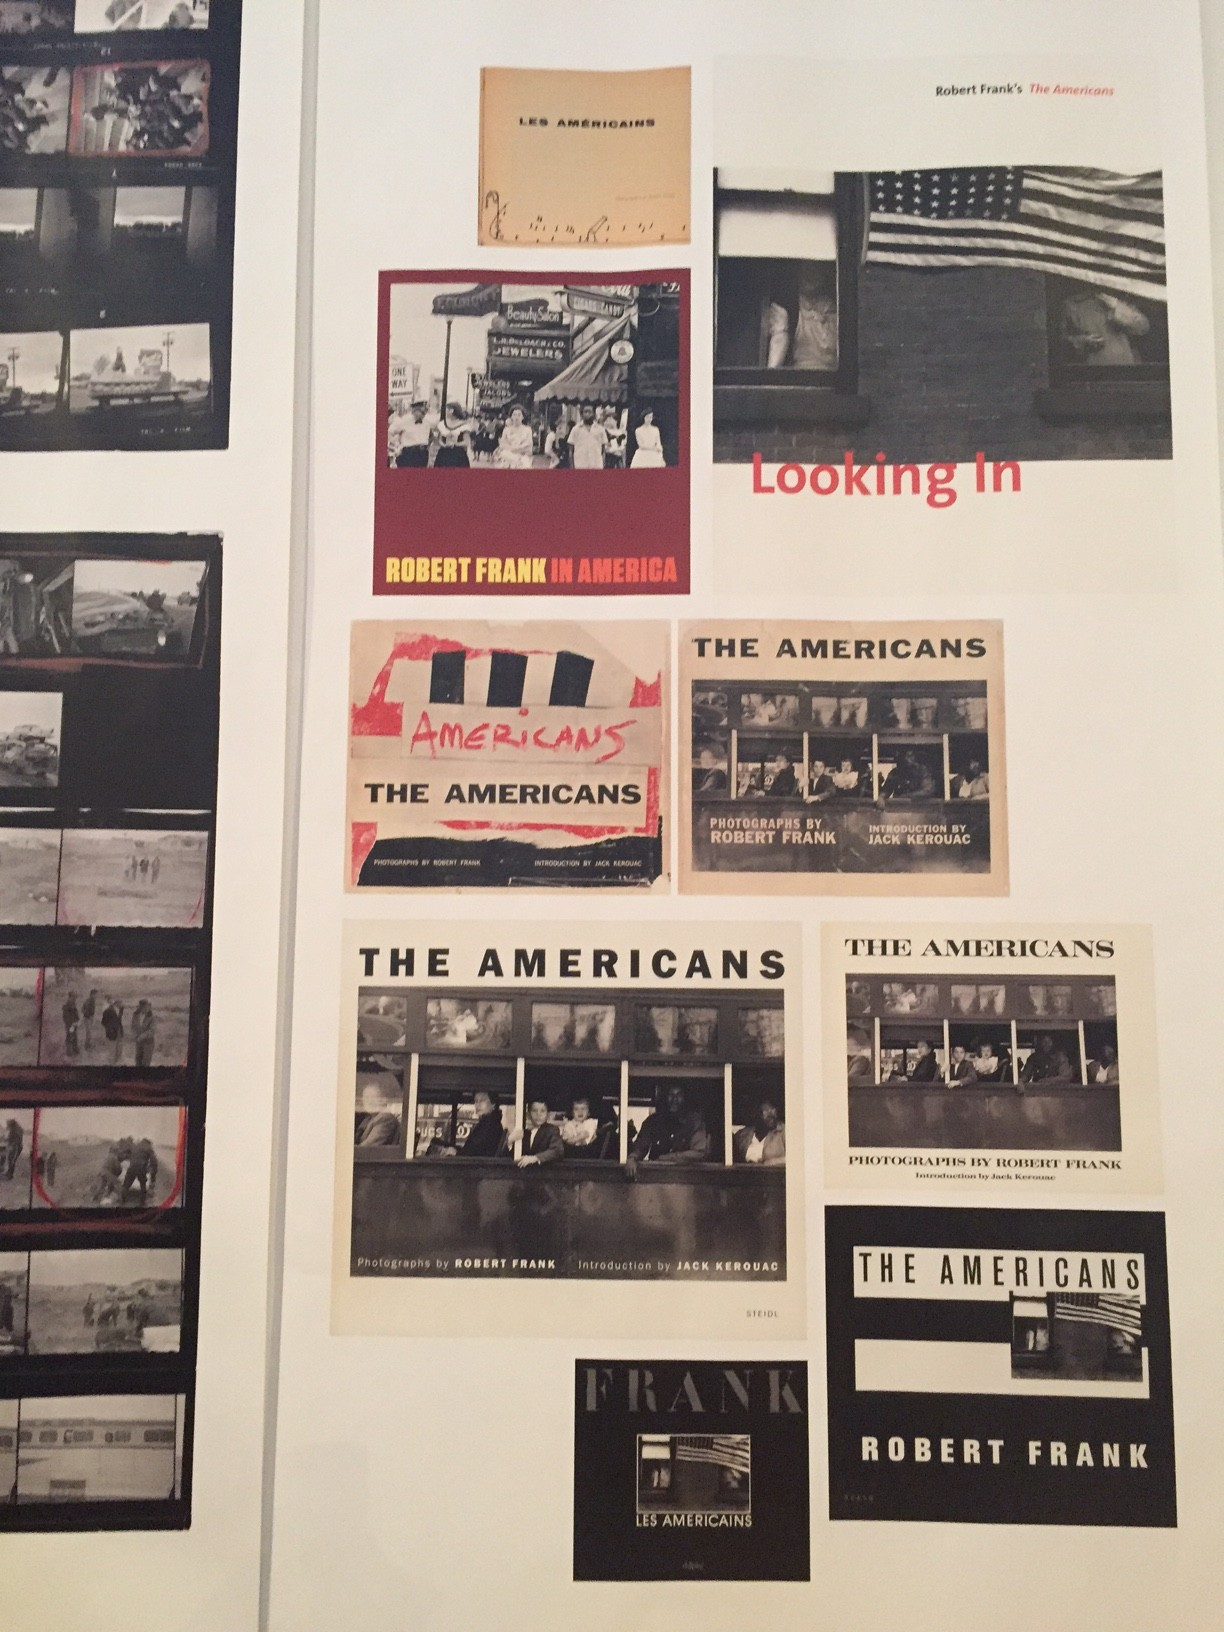 robert frank books and films 1947-2016 in Tokyo